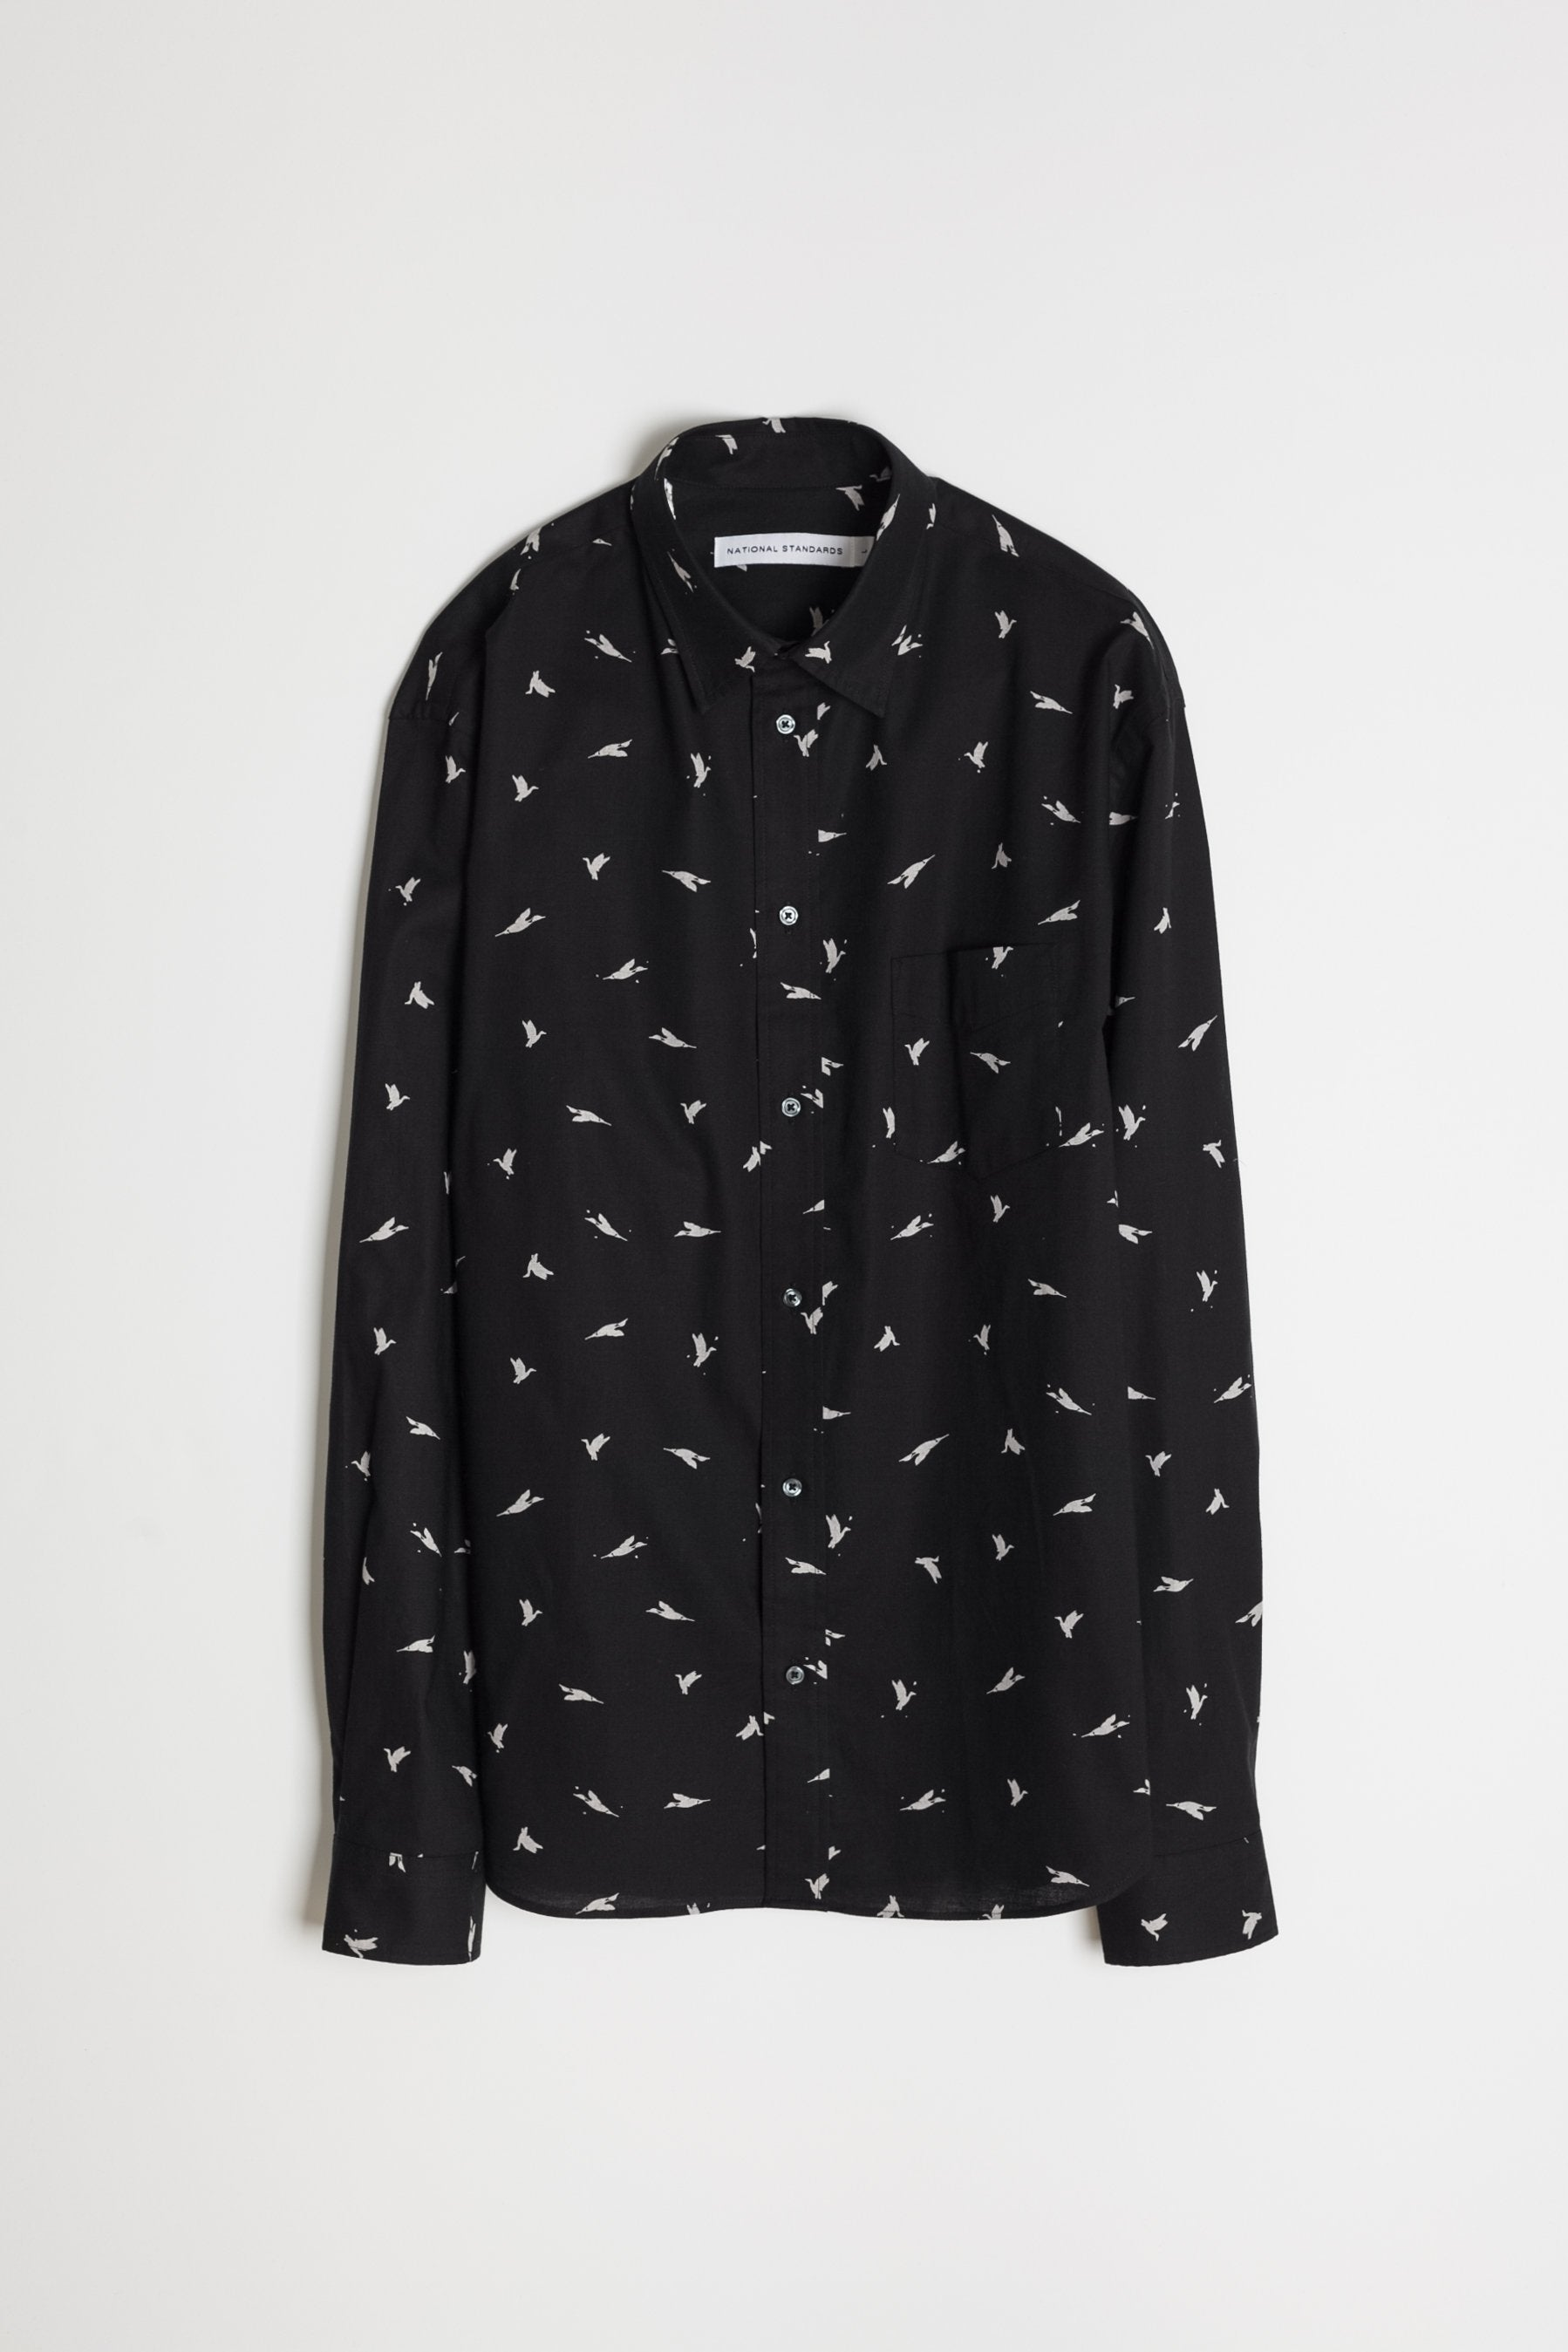 Japanese Bird Print in Black 06